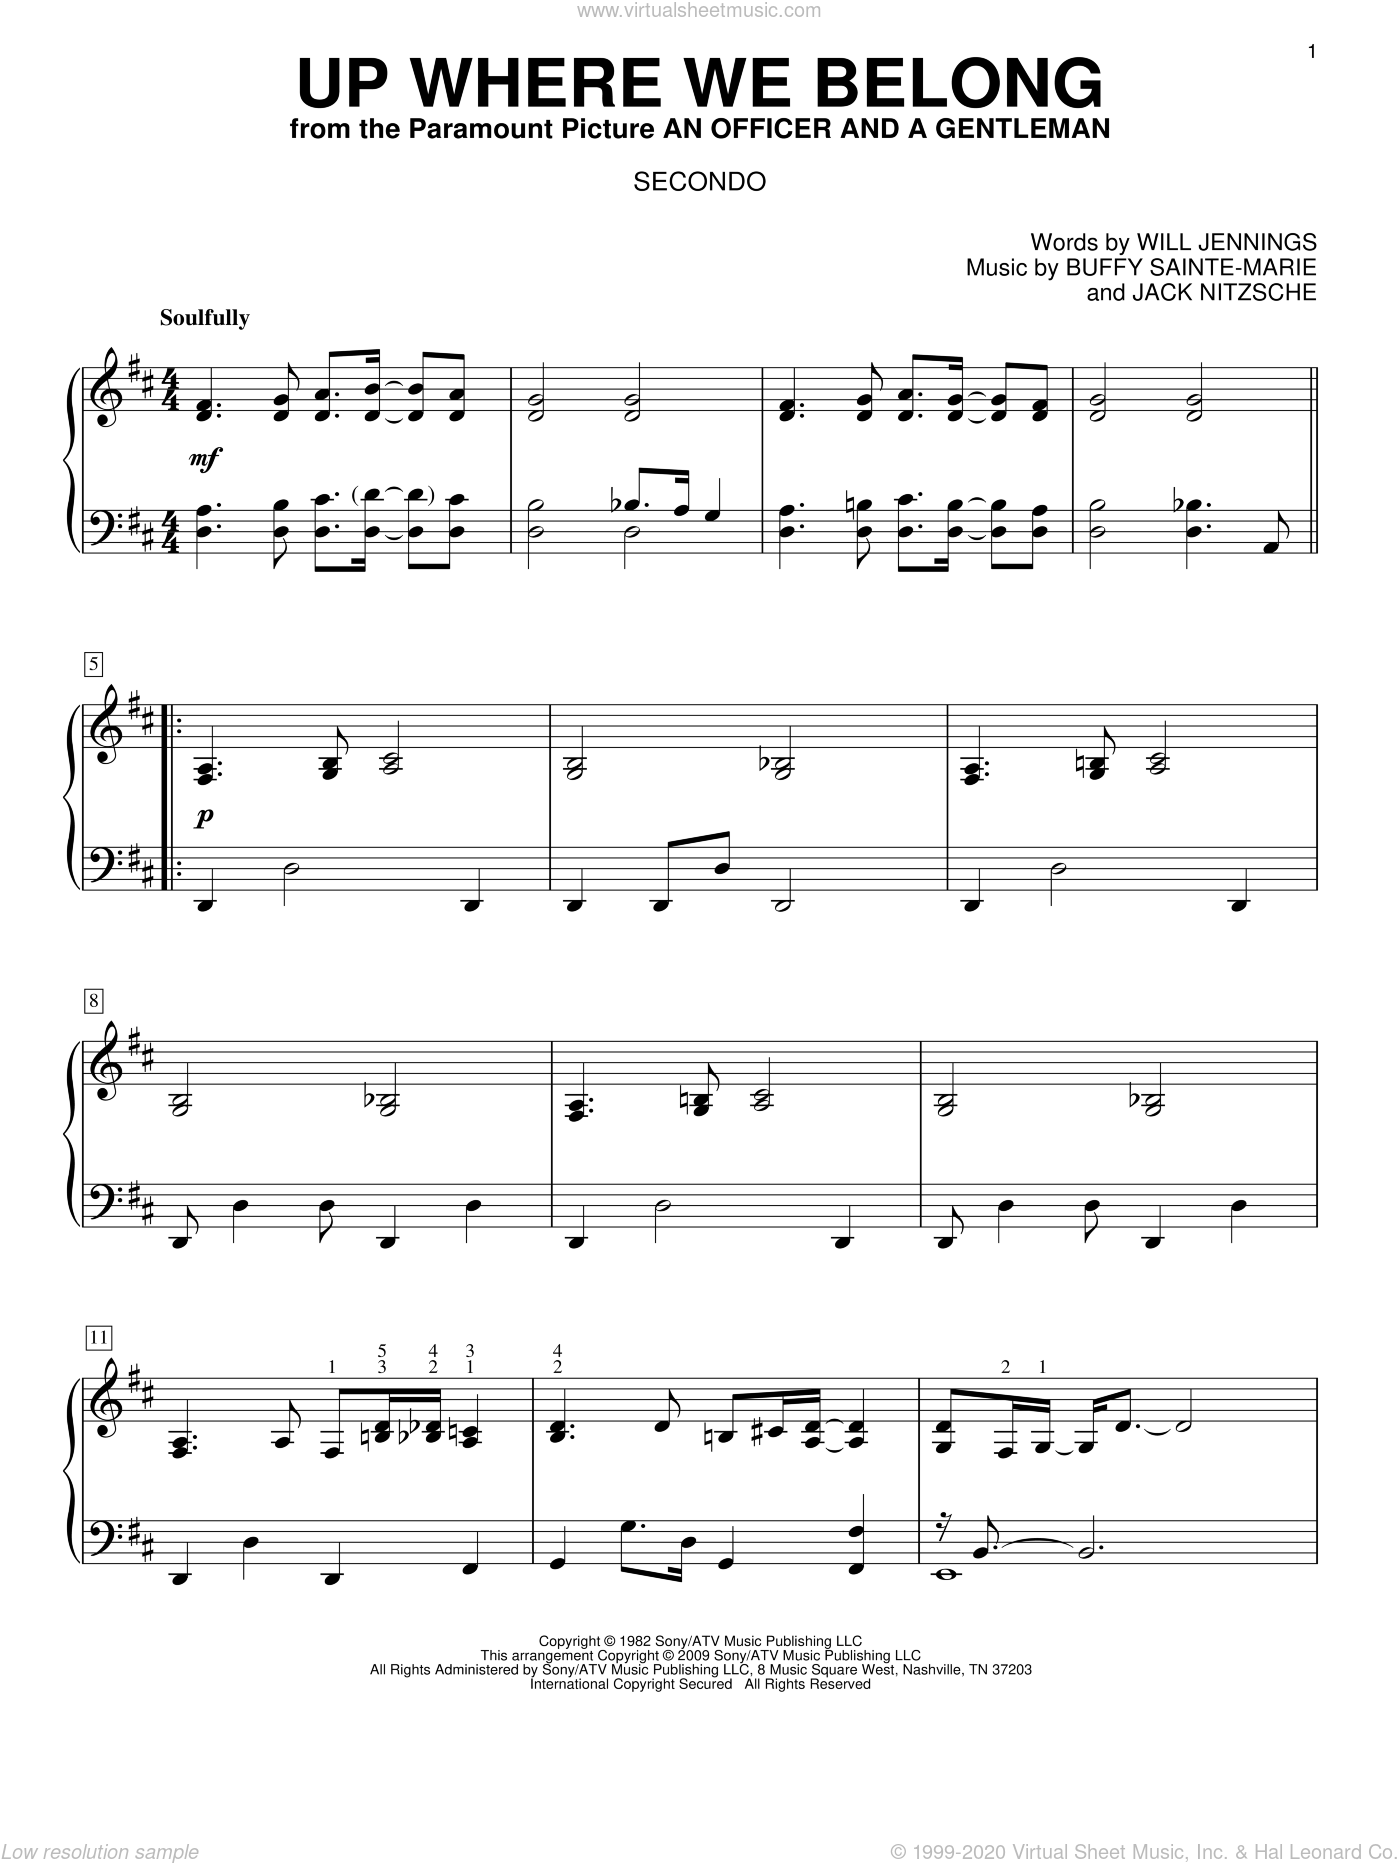 Up Where We Belong sheet music for piano four hands by Joe Cocker, Buffy Sainte-Marie, Jack Nitzche and Will Jennings, wedding score, intermediate skill level